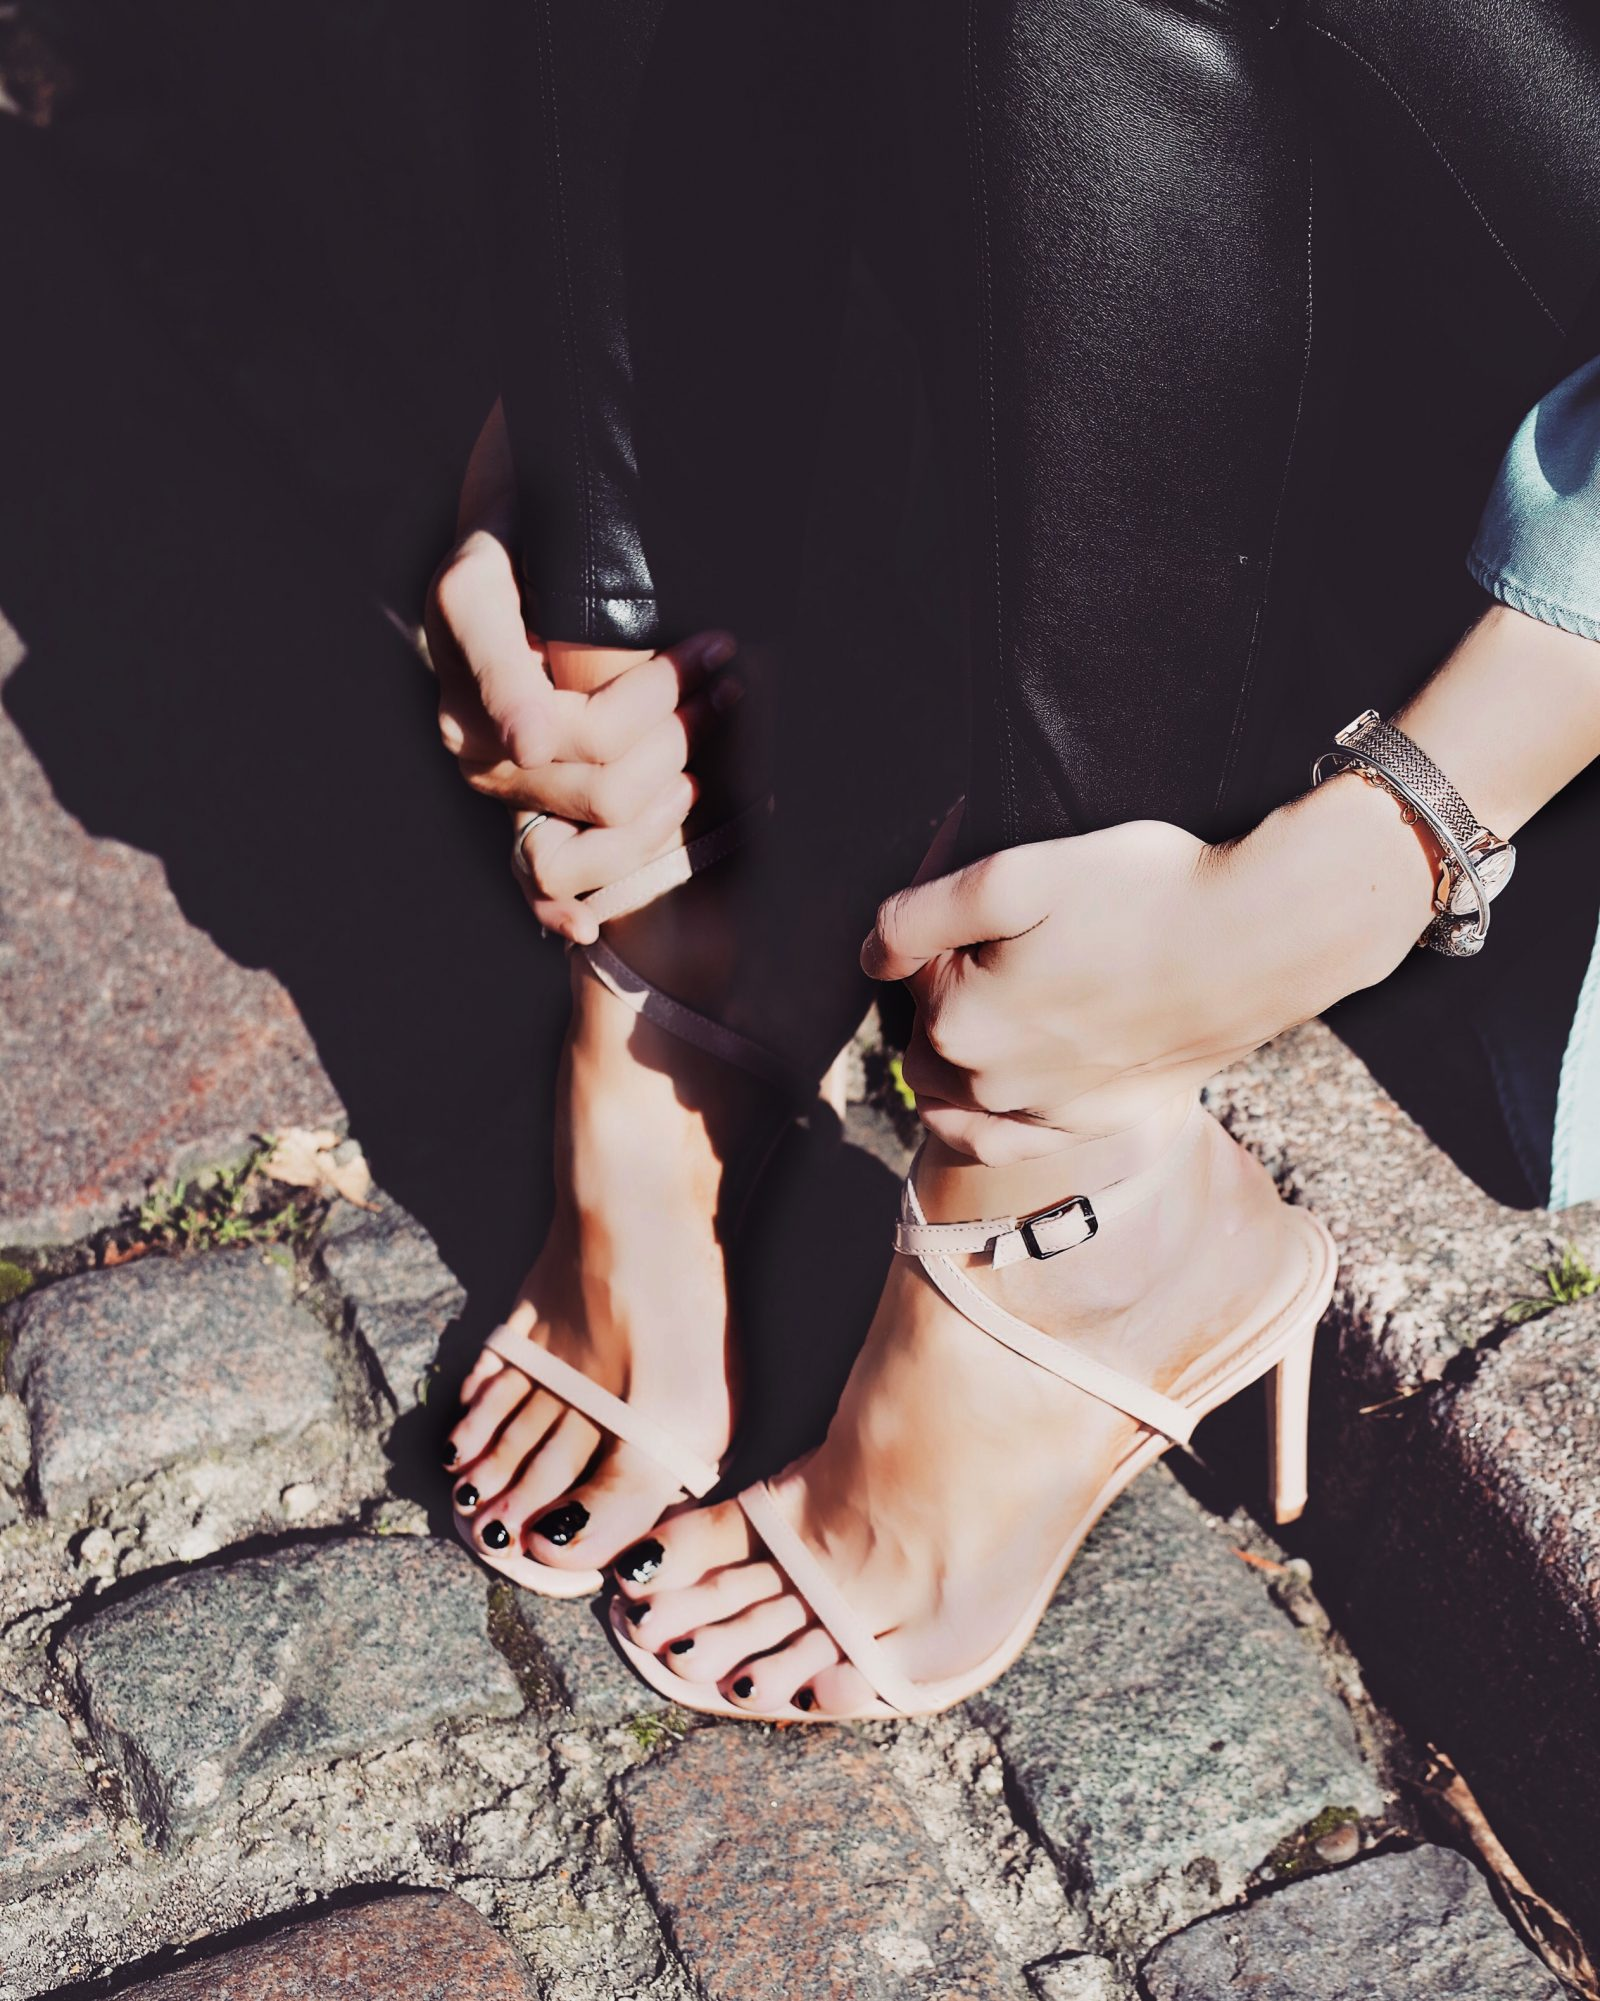 LFW Streetstyle - Nude Sandals - Fashion Blogger Sinead Crowe